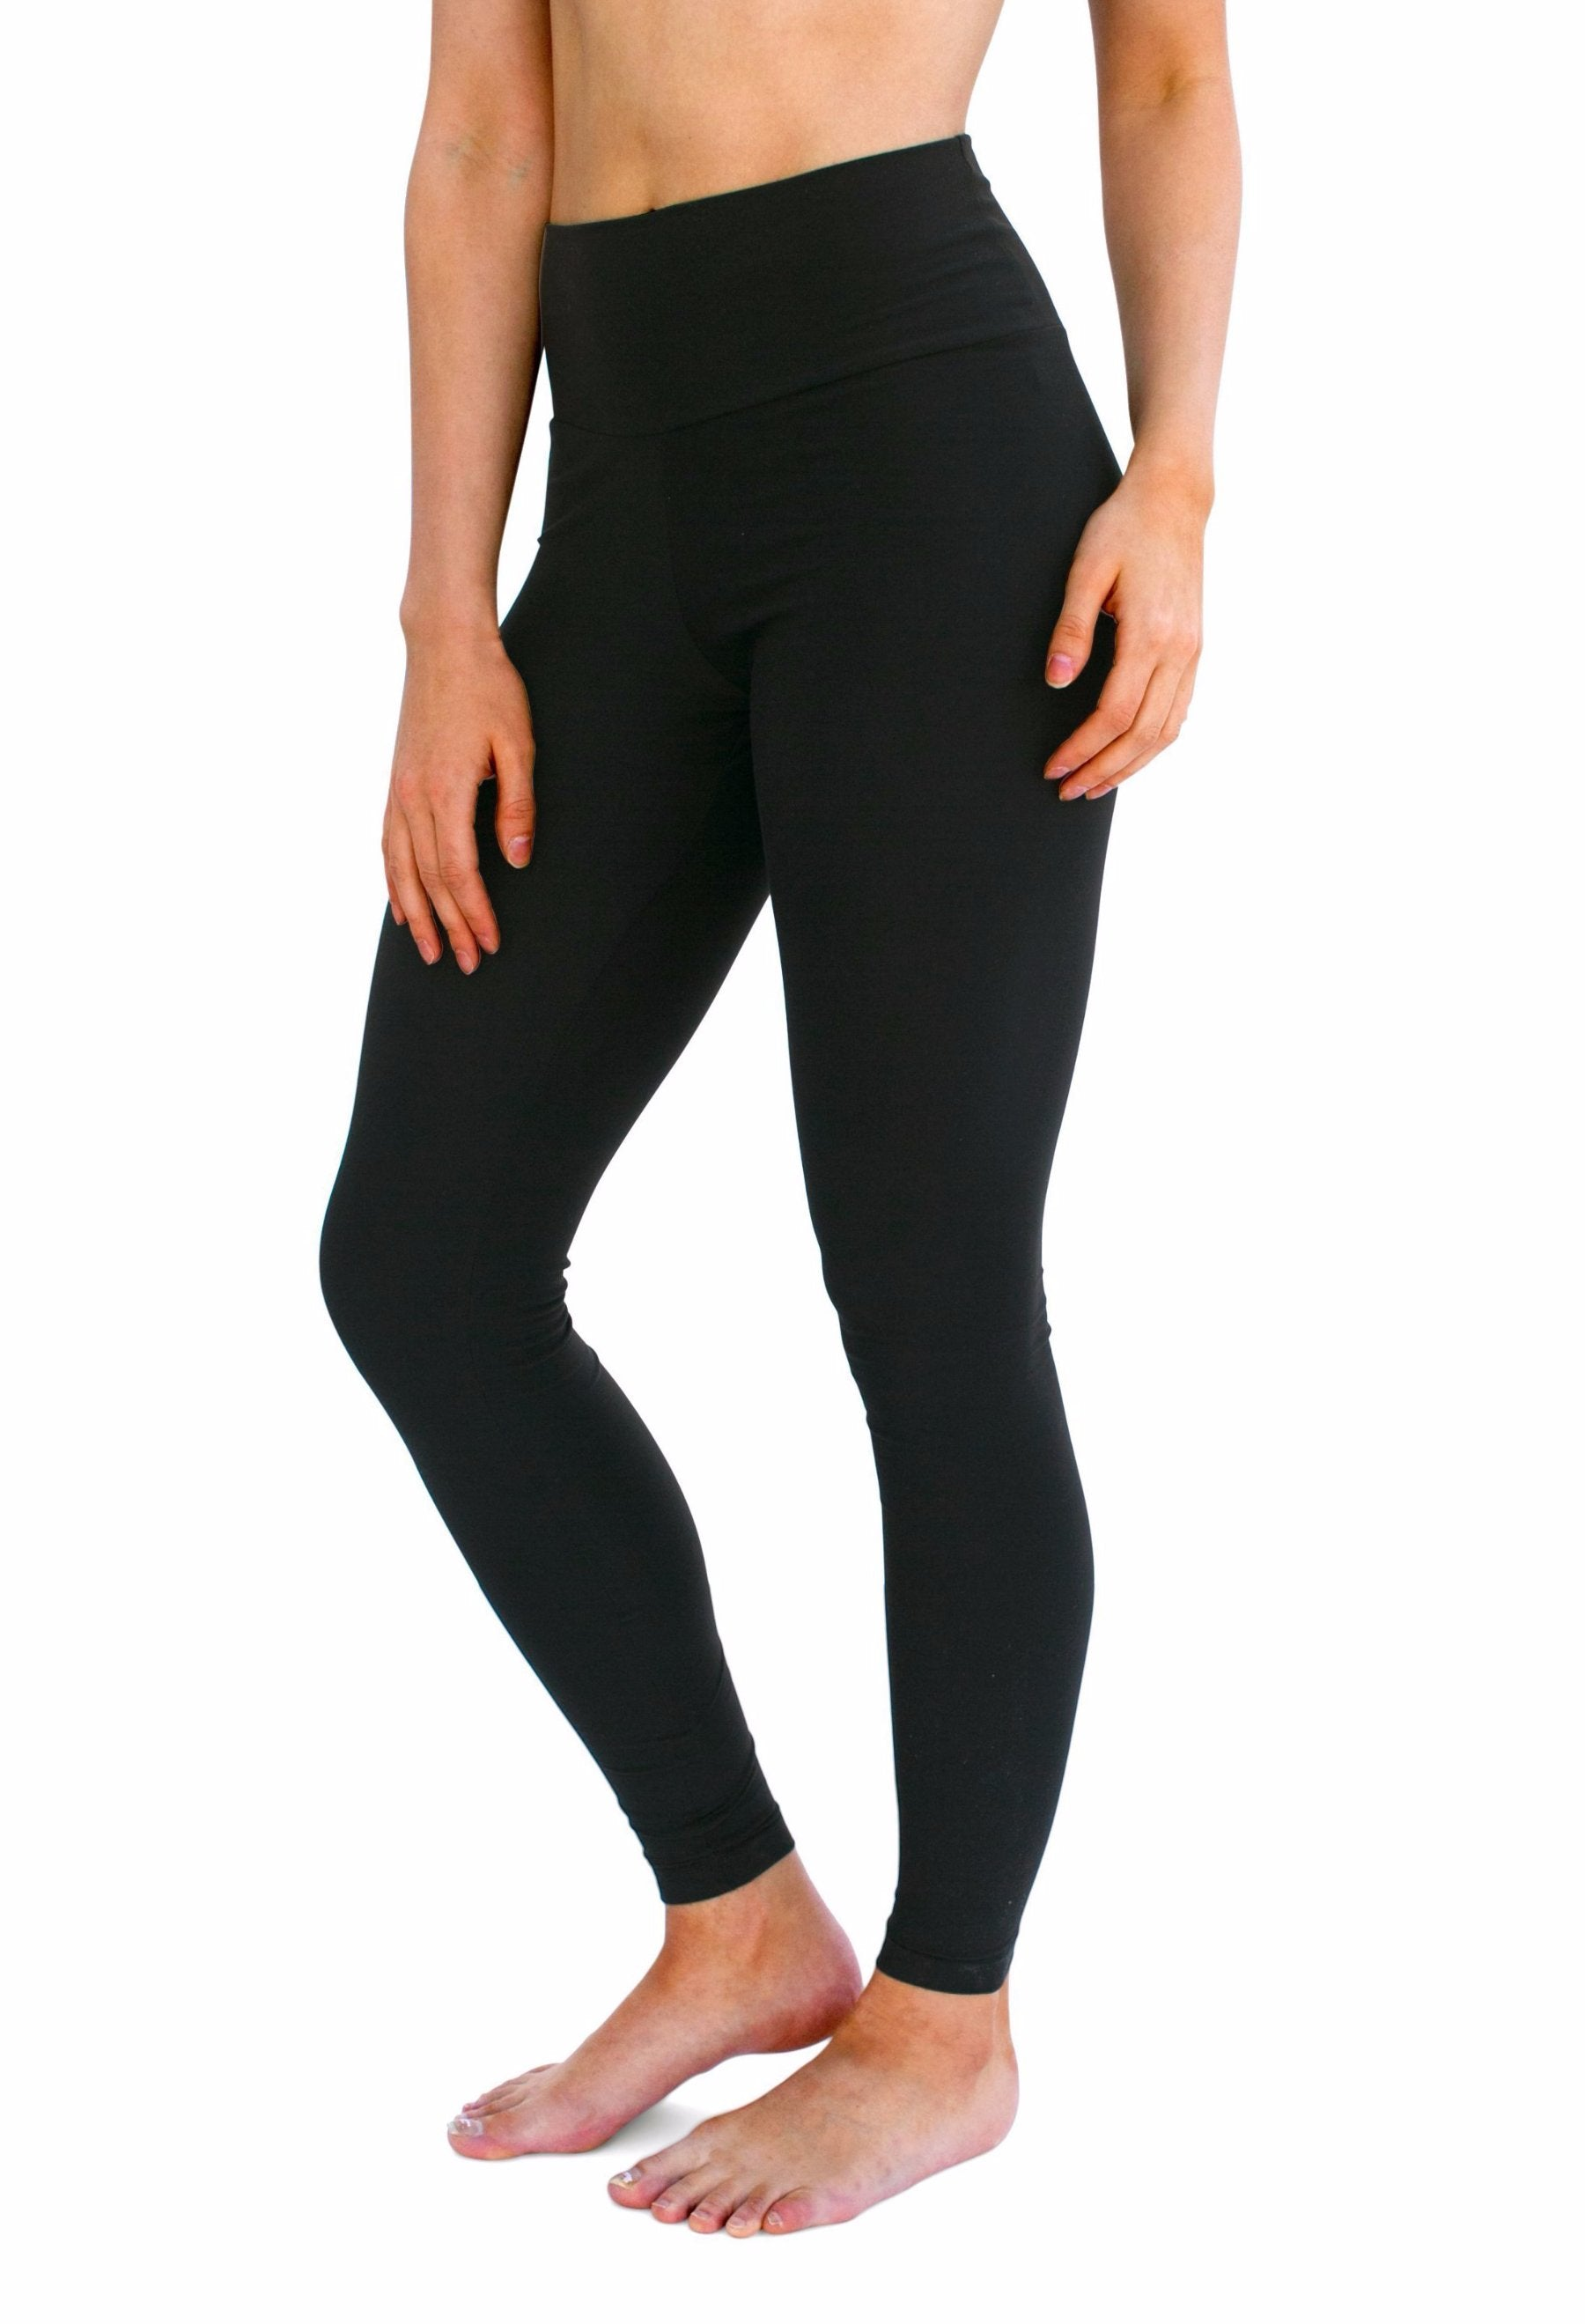 Zions Den Apparel  Lifestyle XS / Black Georgia Lifestyle Legging